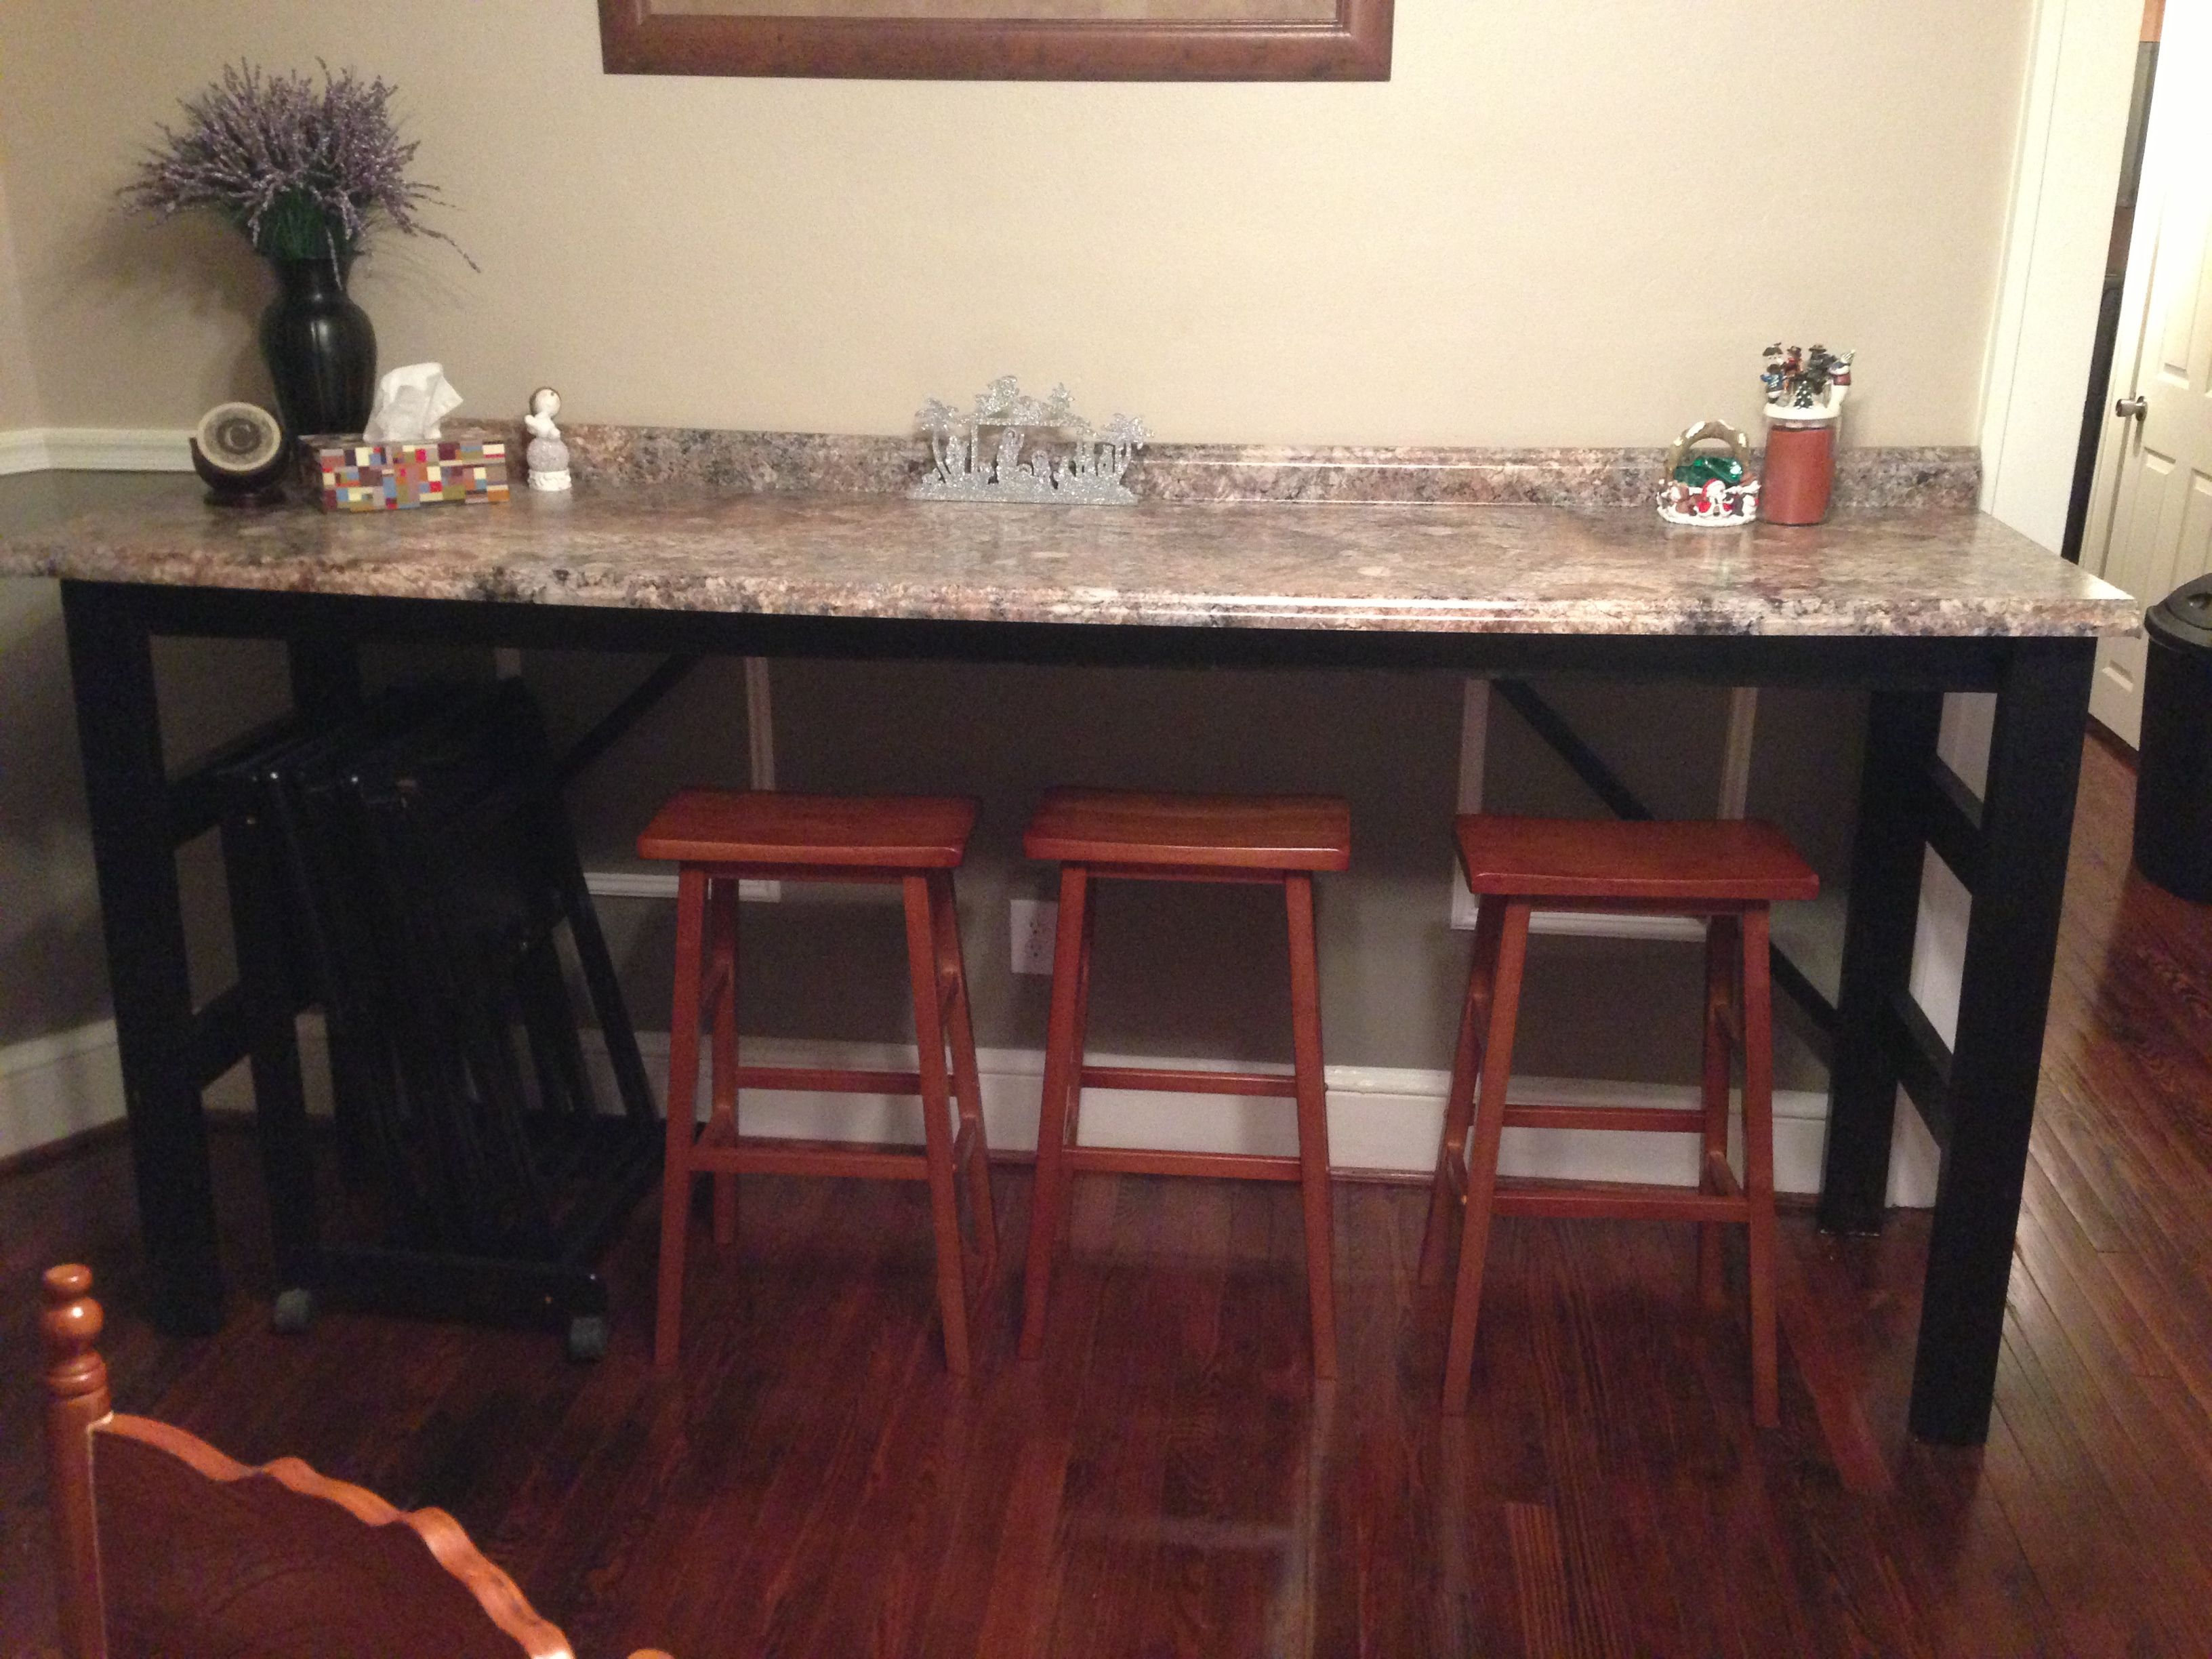 Bar For Eating And Extra Kitchen Counter Space Buffet Hosting DIY